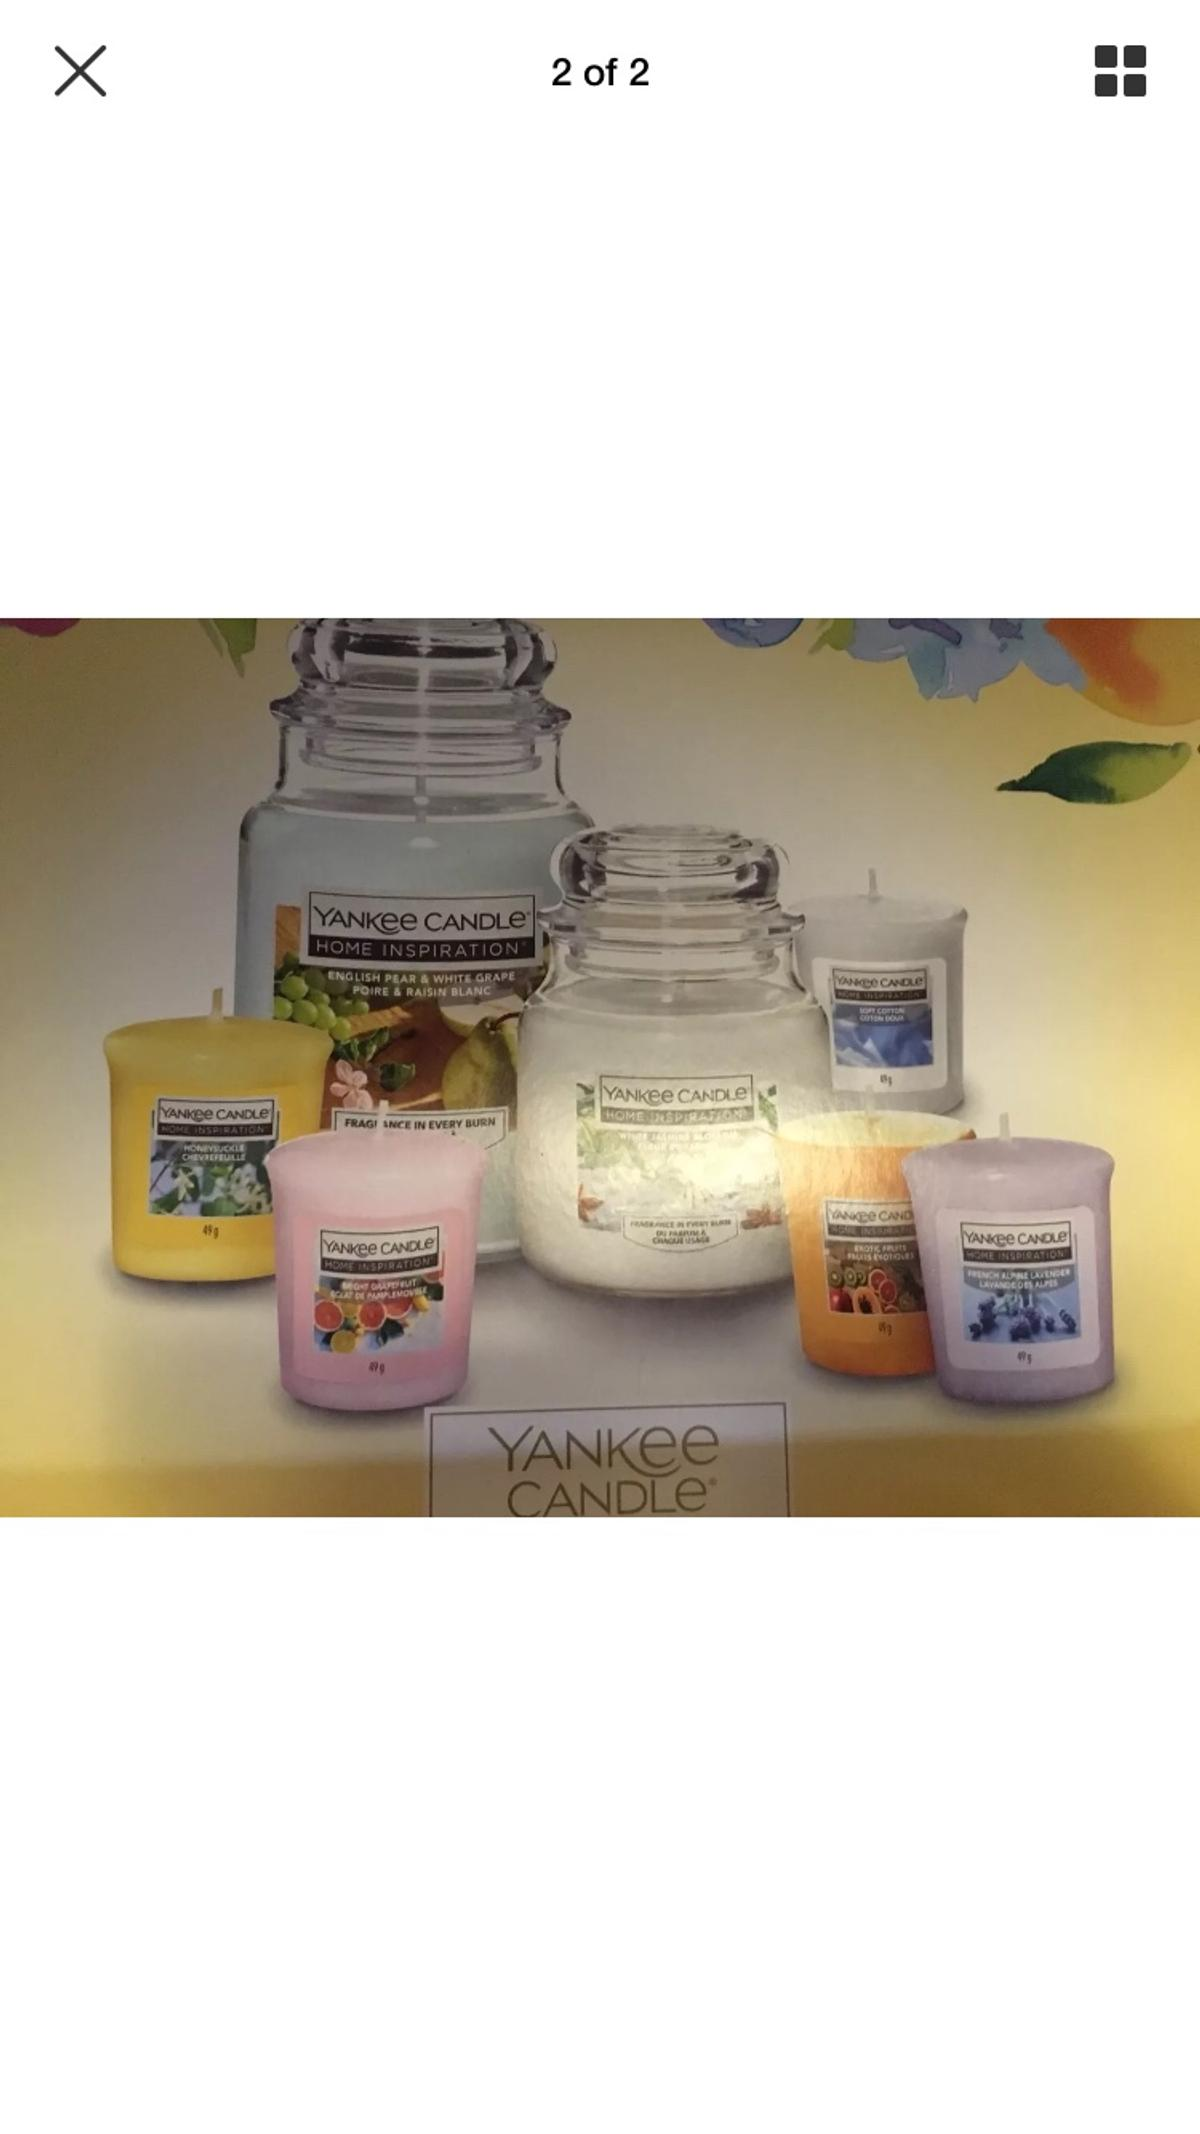 Yankee Candle Gift Set Of 7 In Total BNIB M34 Tameside For 2500